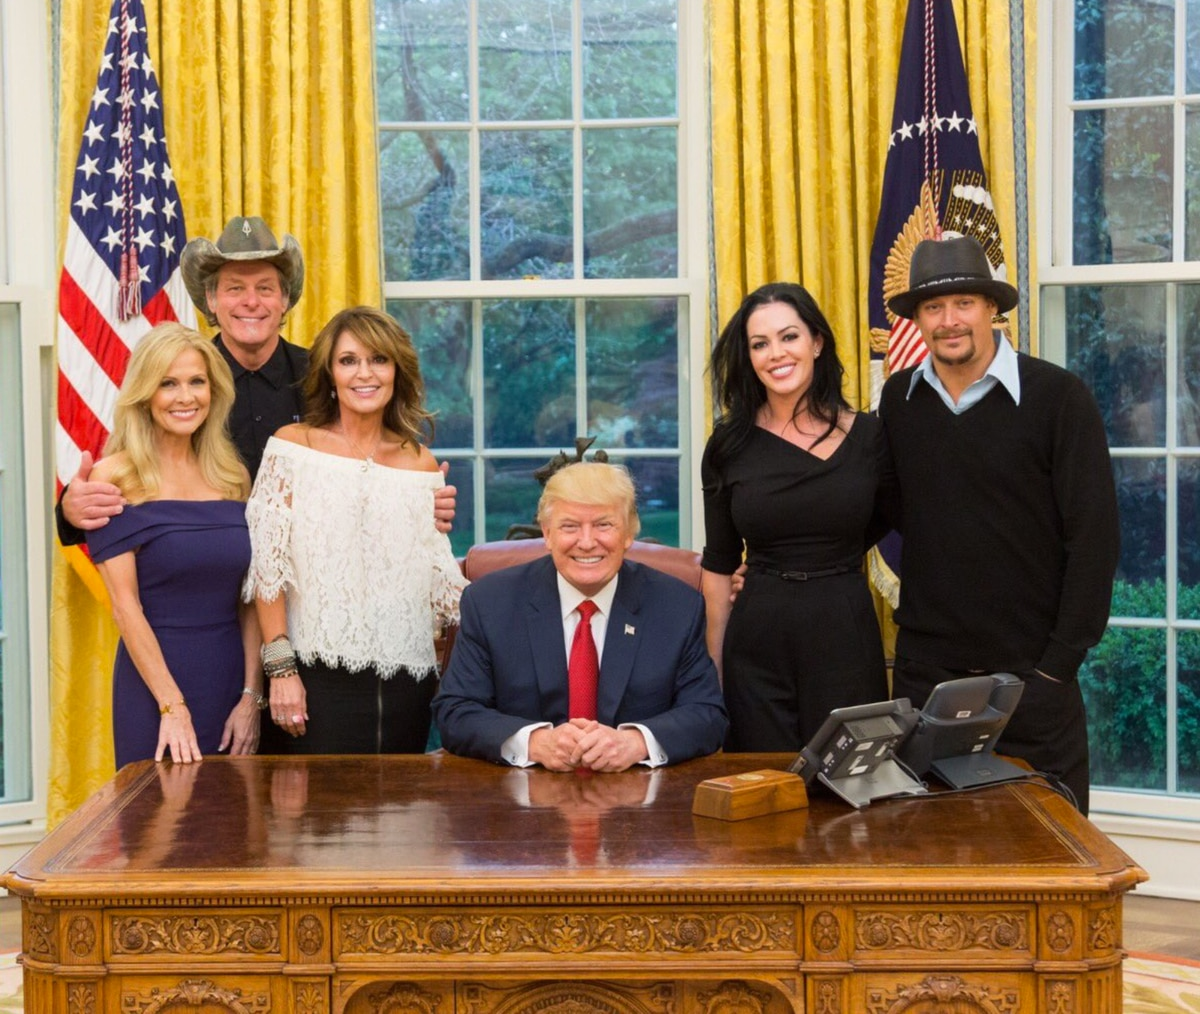 Sarah Palin and President Trump with Ted Nugent and his wife, Shemane Deziel, and Kid Rock and his fiancée, Audrey Berry, at the White House on Wednesday.